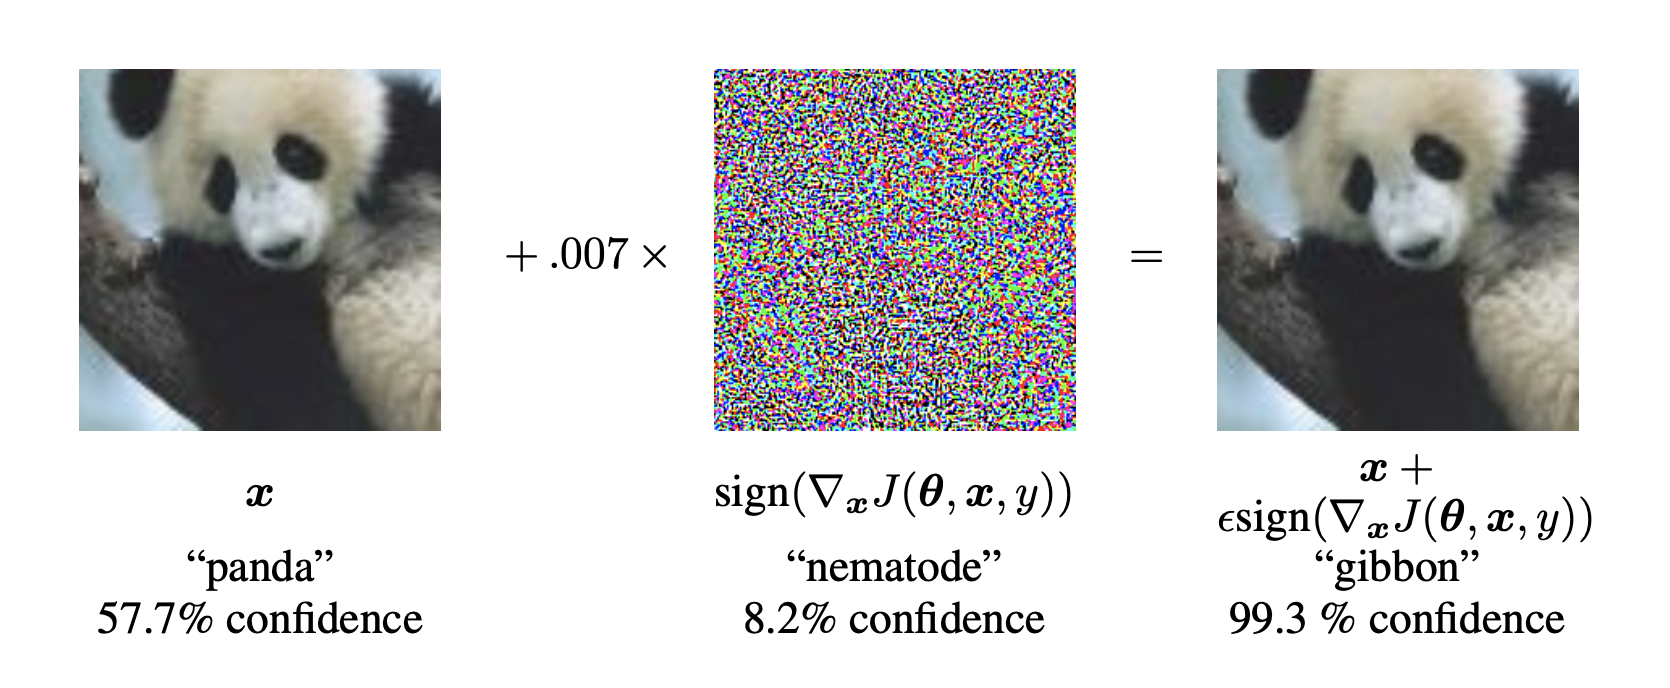 An example of adversarial example generation applied to GoogLeNet.